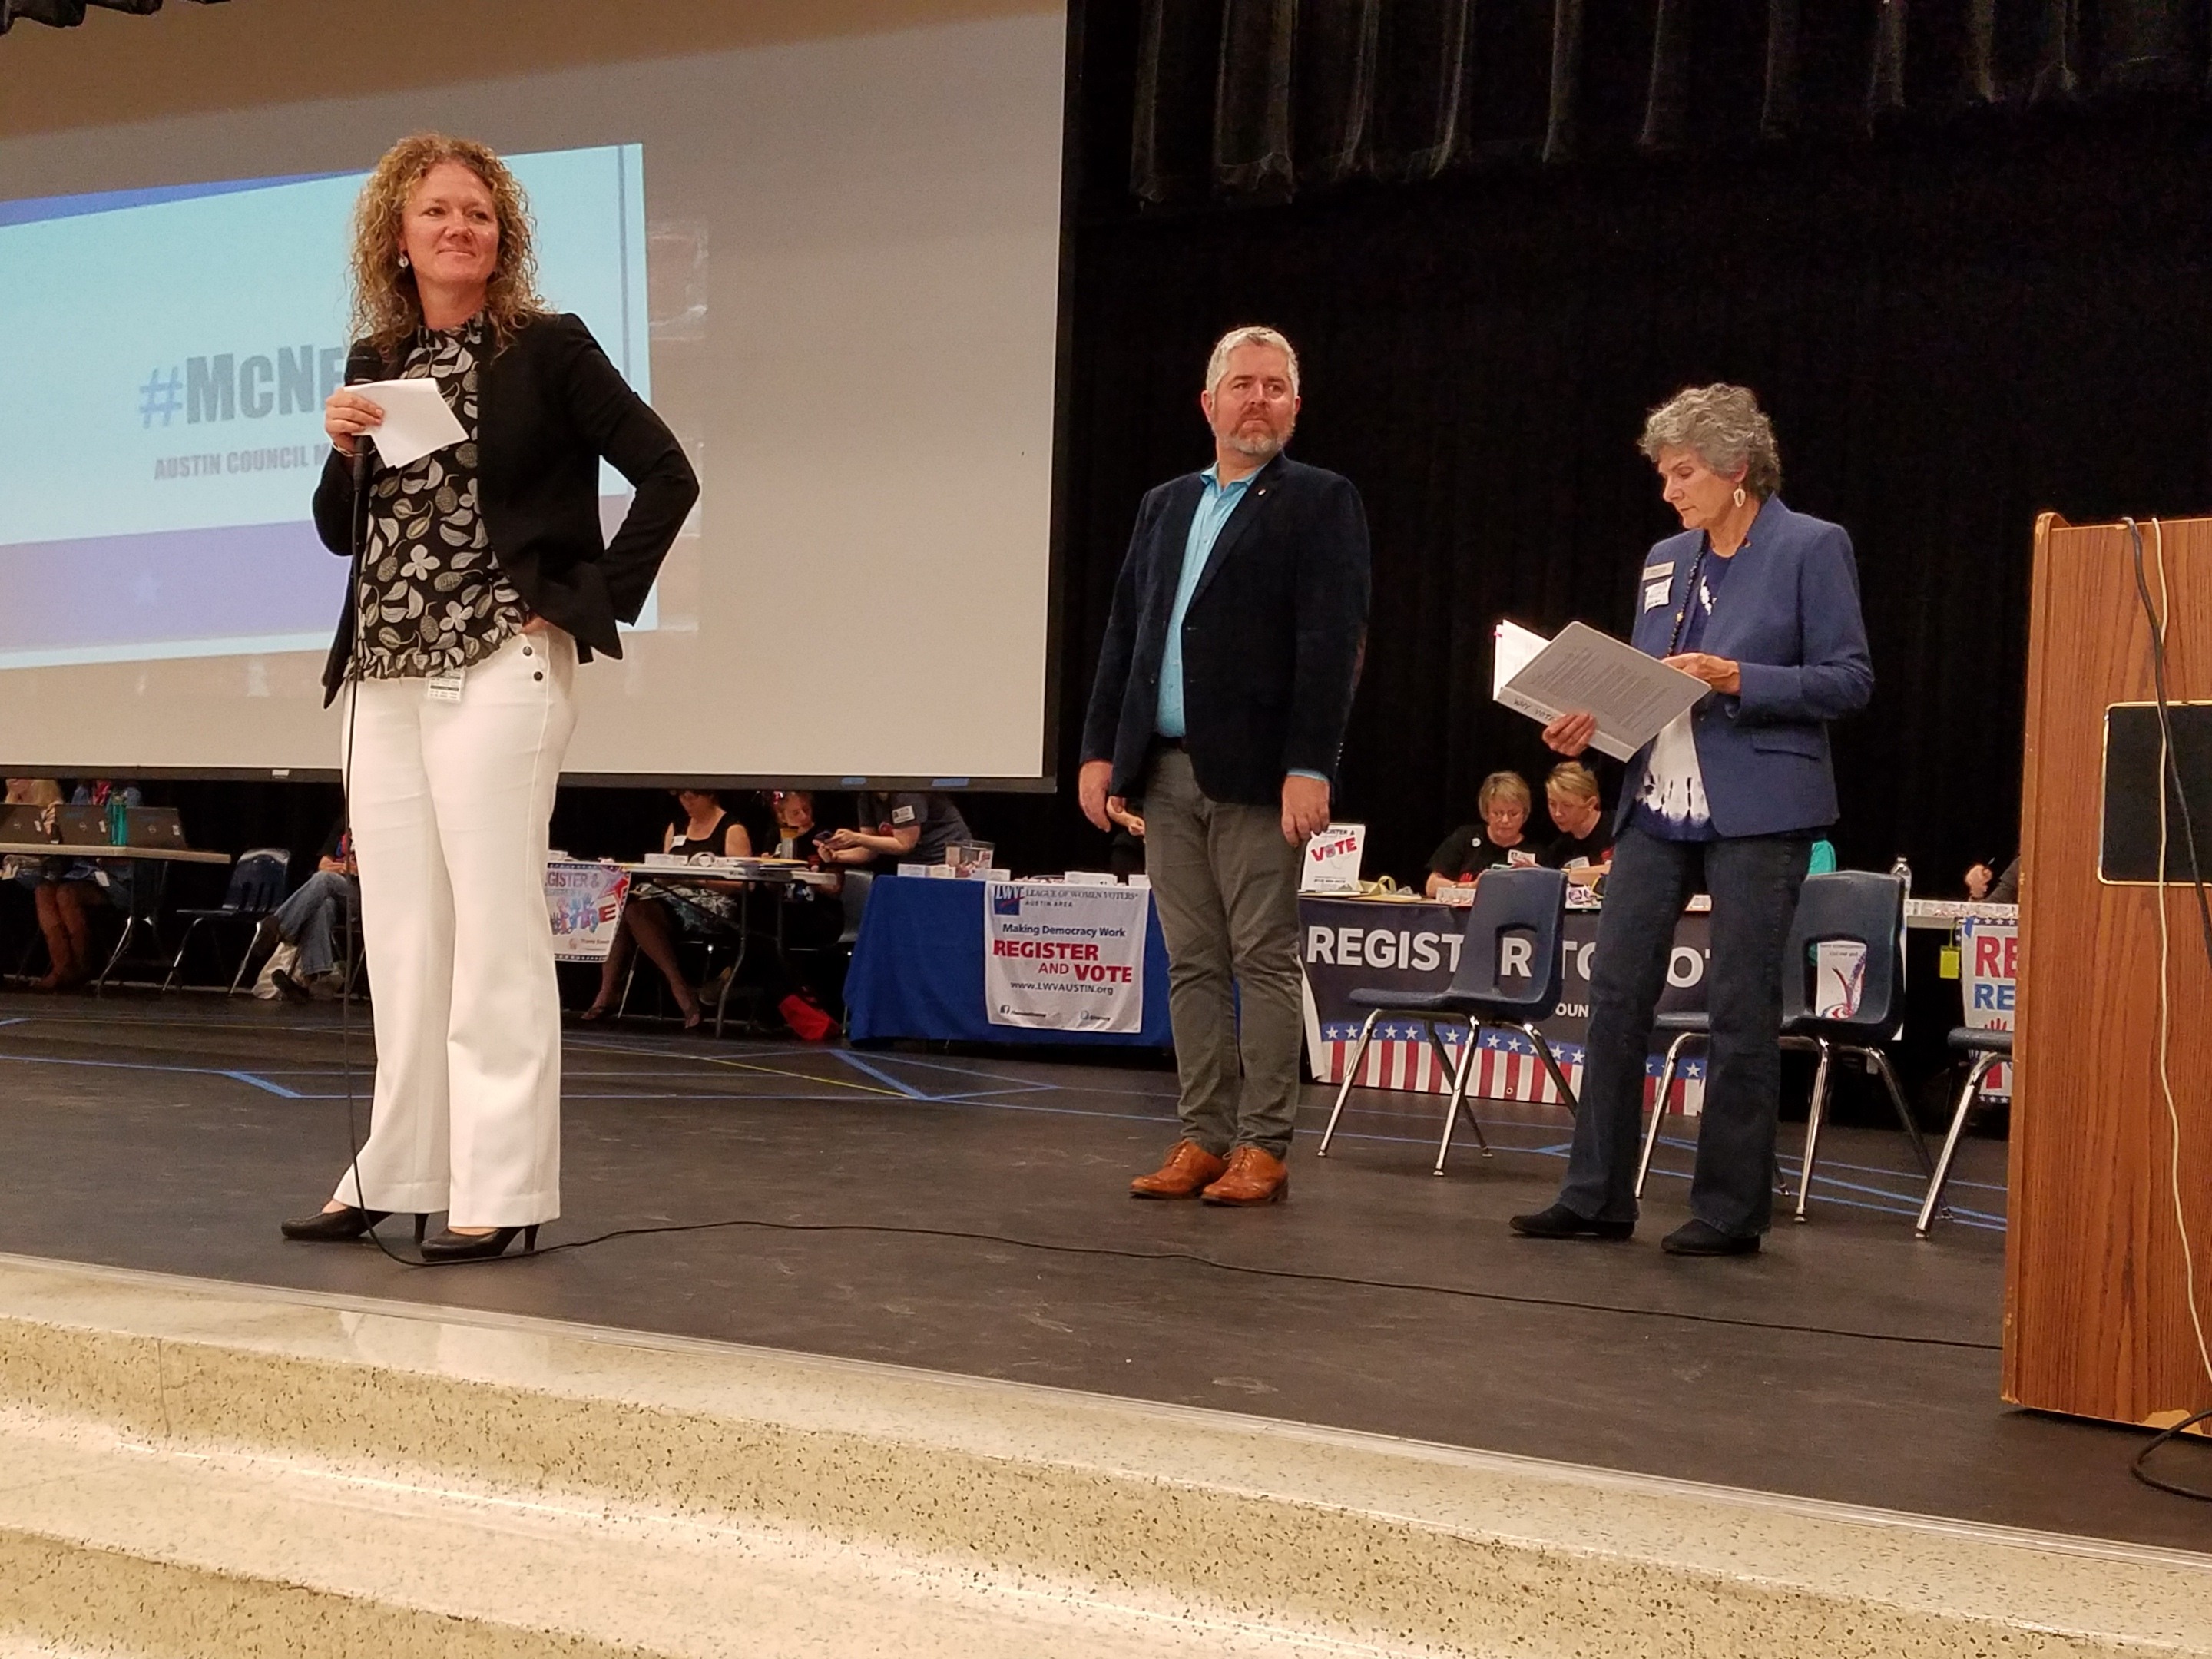 Principal Amanda Johnson stands on stage waiting for students to find seats while Council Member Jimmy Flannigan and Commissioner Cook stand behind her.